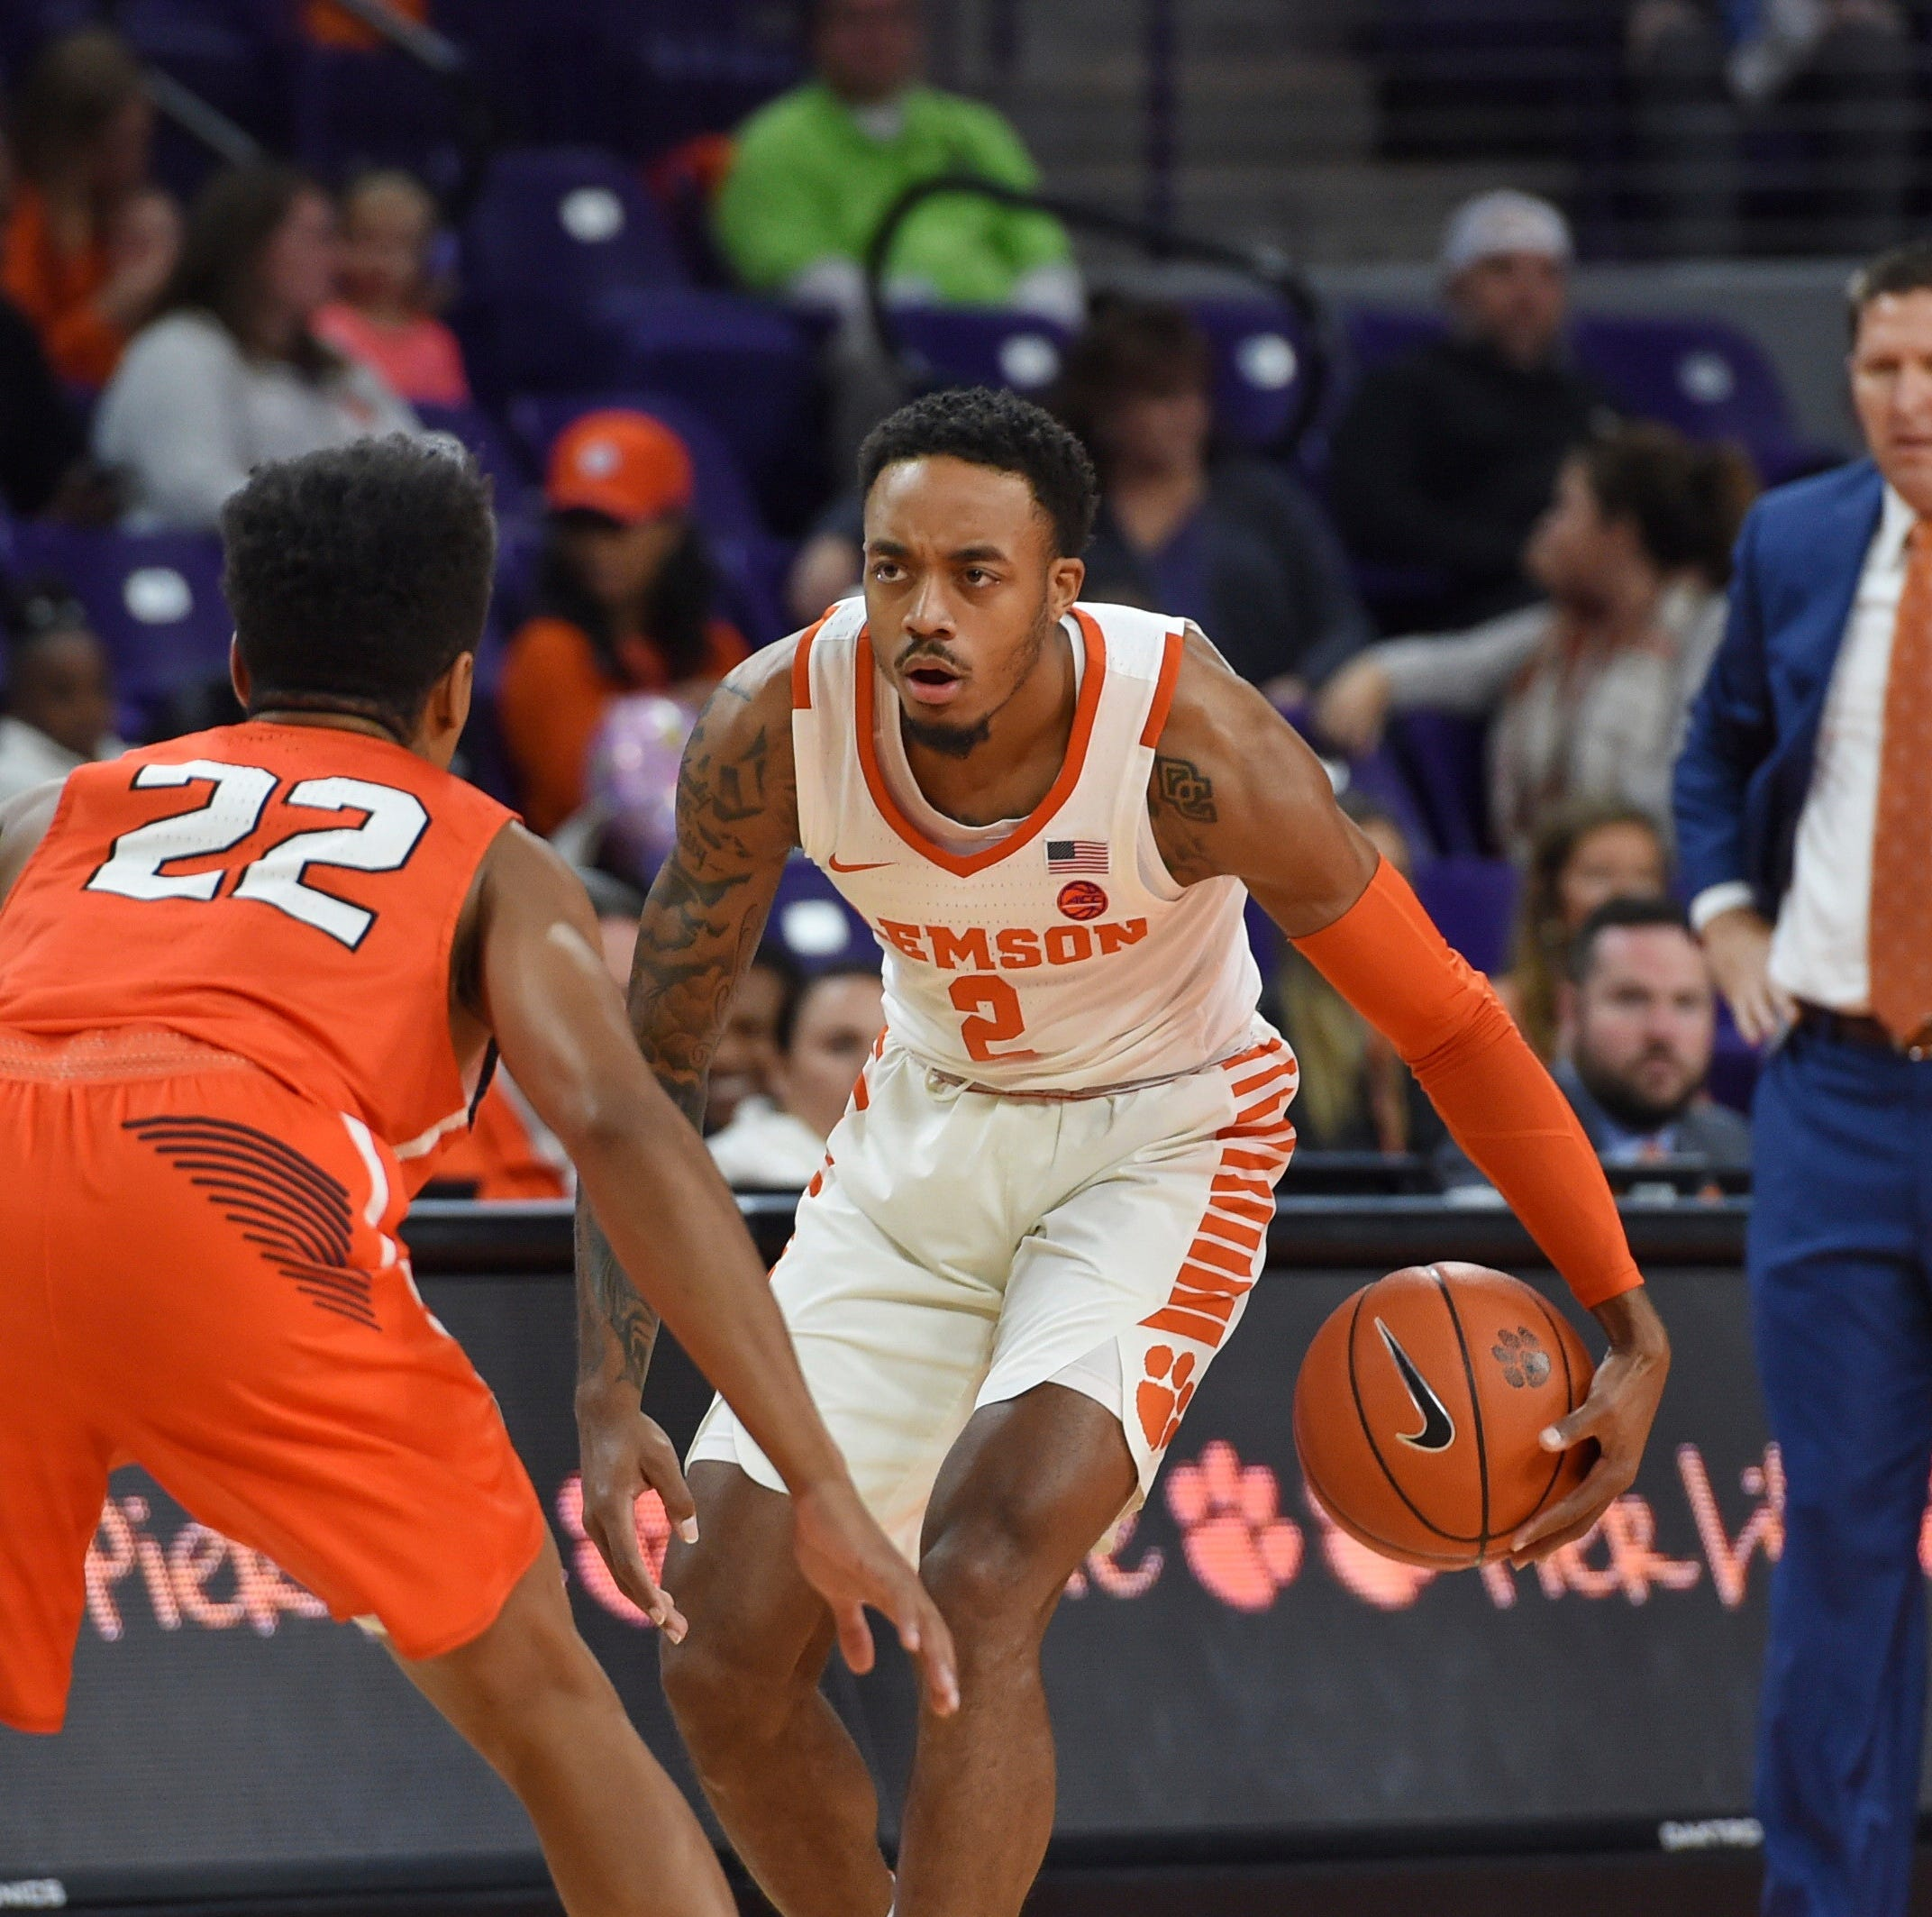 Clemson men's basketball struggling with 3-pointers on both ends of the court